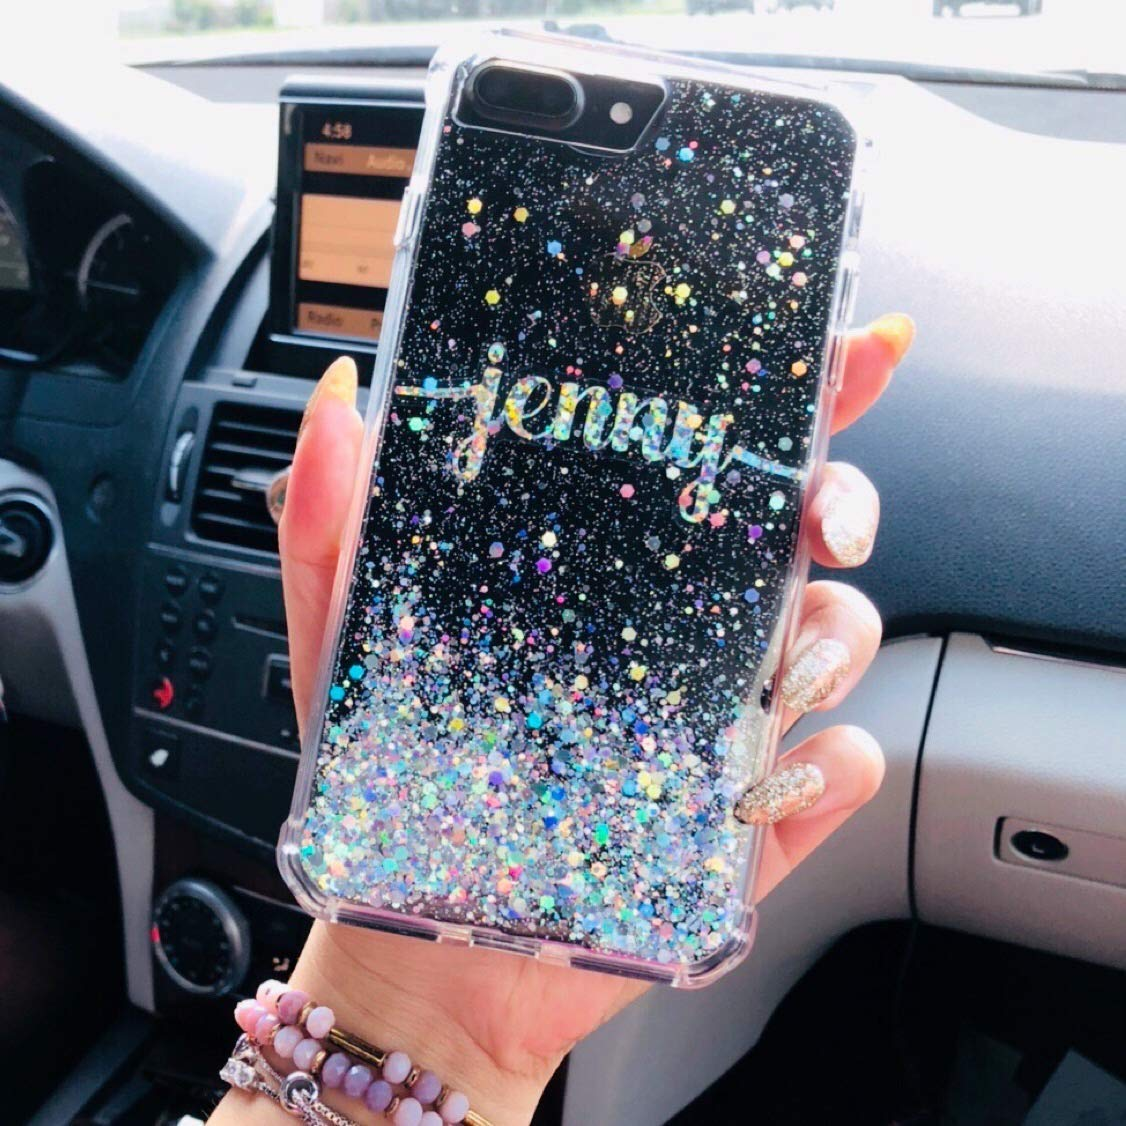 Personalized holographic silver glitter phone case Google pixel 3 case, google pixel 3 xl case, google pixel 2 xl, google pixel 2, google pixel xl, google pixel, iPhone Xs Max case, iPhone Xs case